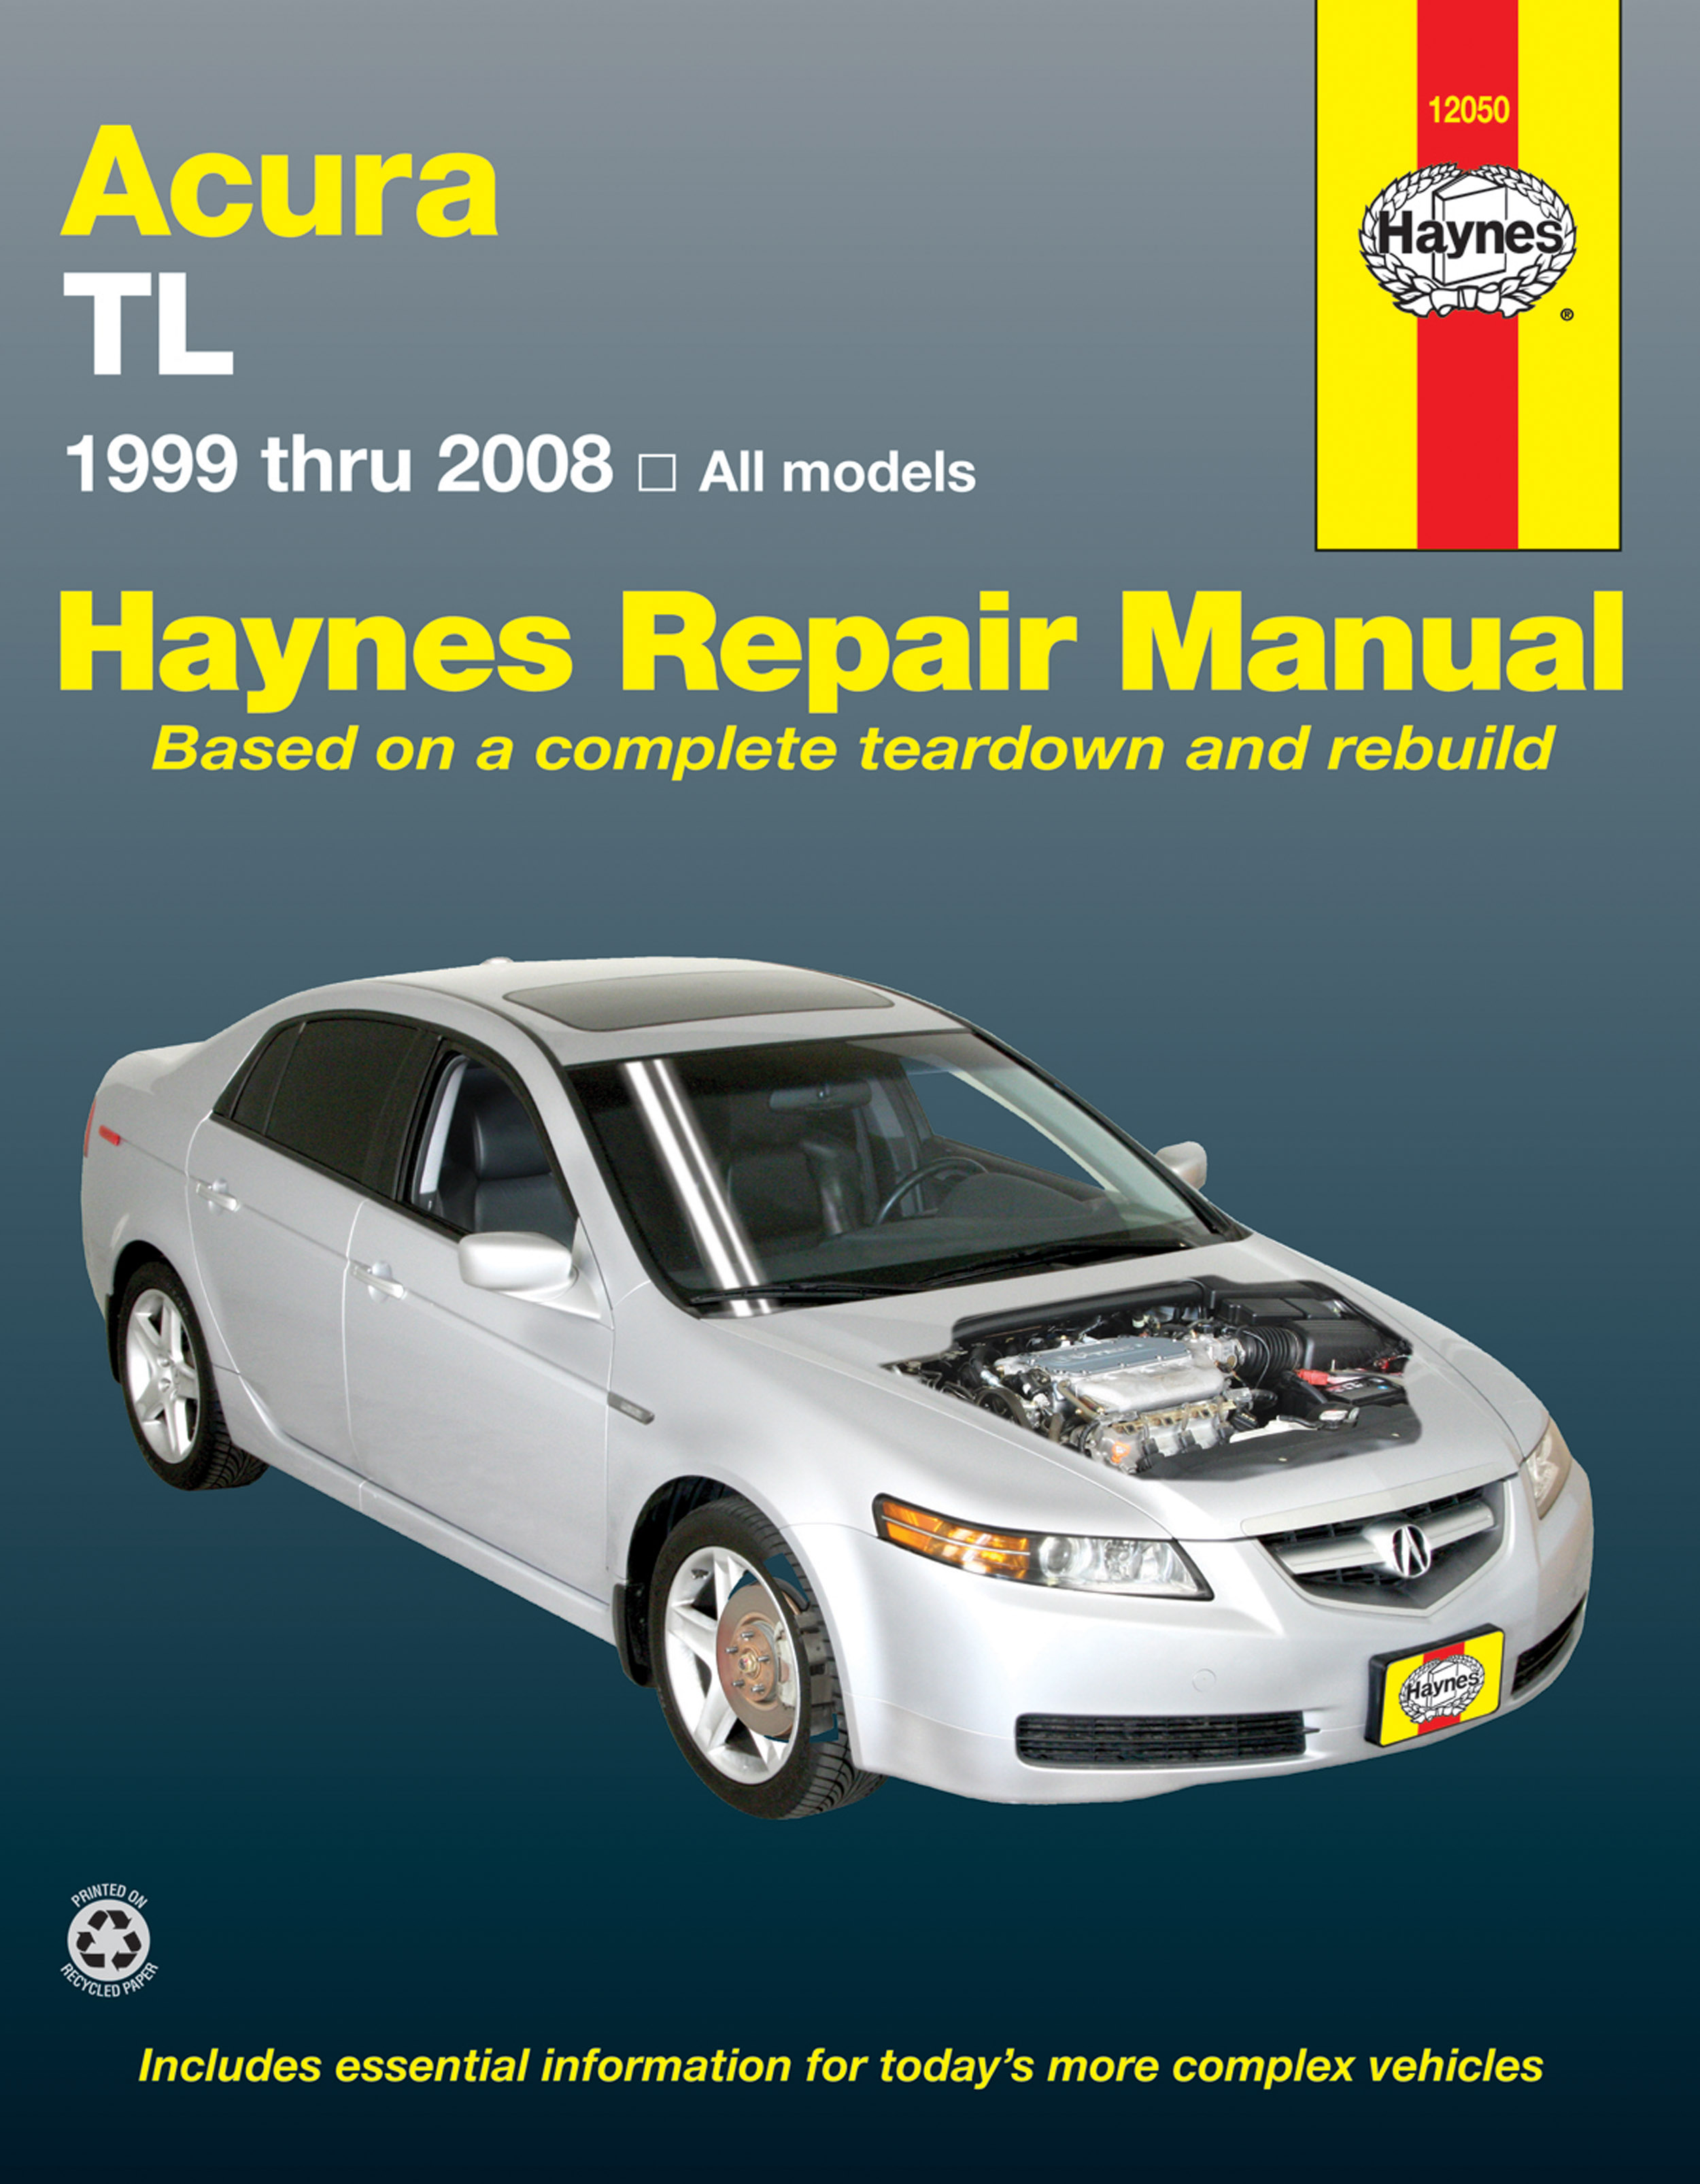 acura tl for tl models 99 08 haynes repair manual haynes manuals rh haynes com 2003 acura mdx repair manual 2003 acura cl repair manual